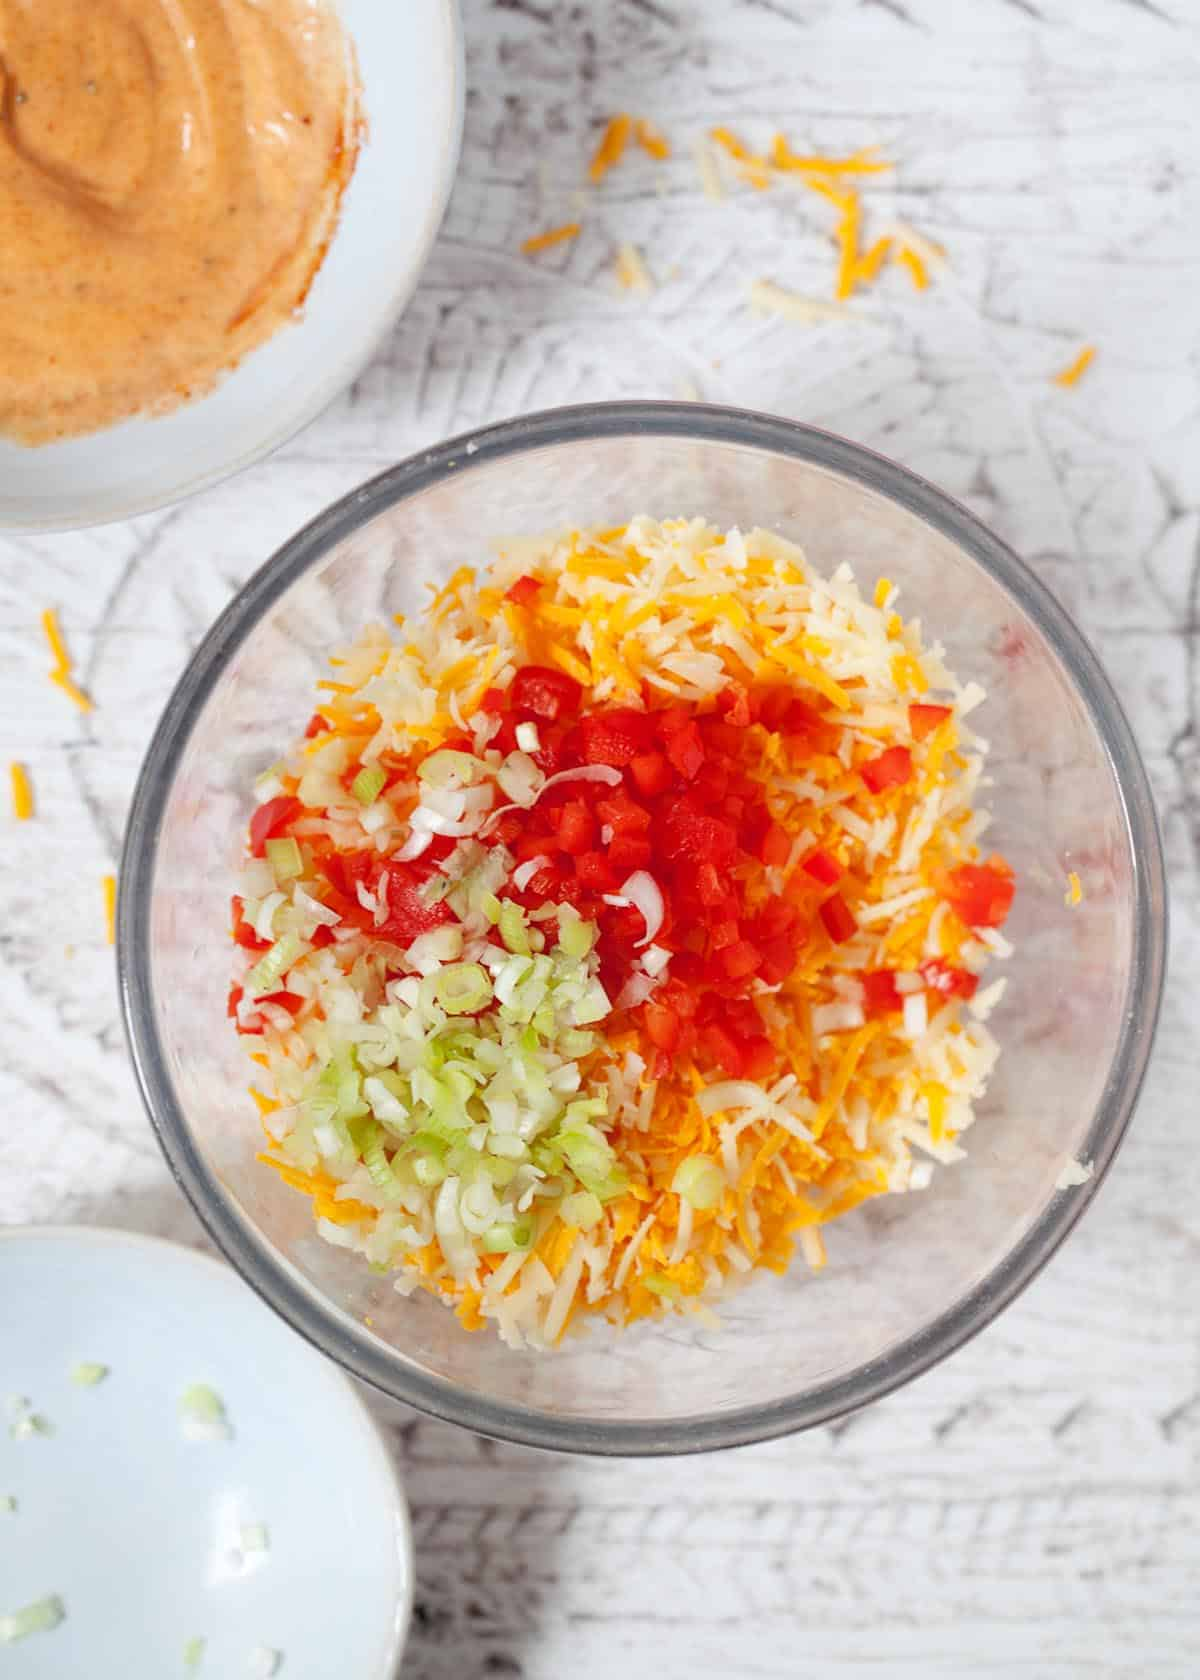 Mixed grated cheese with onion and red pepper